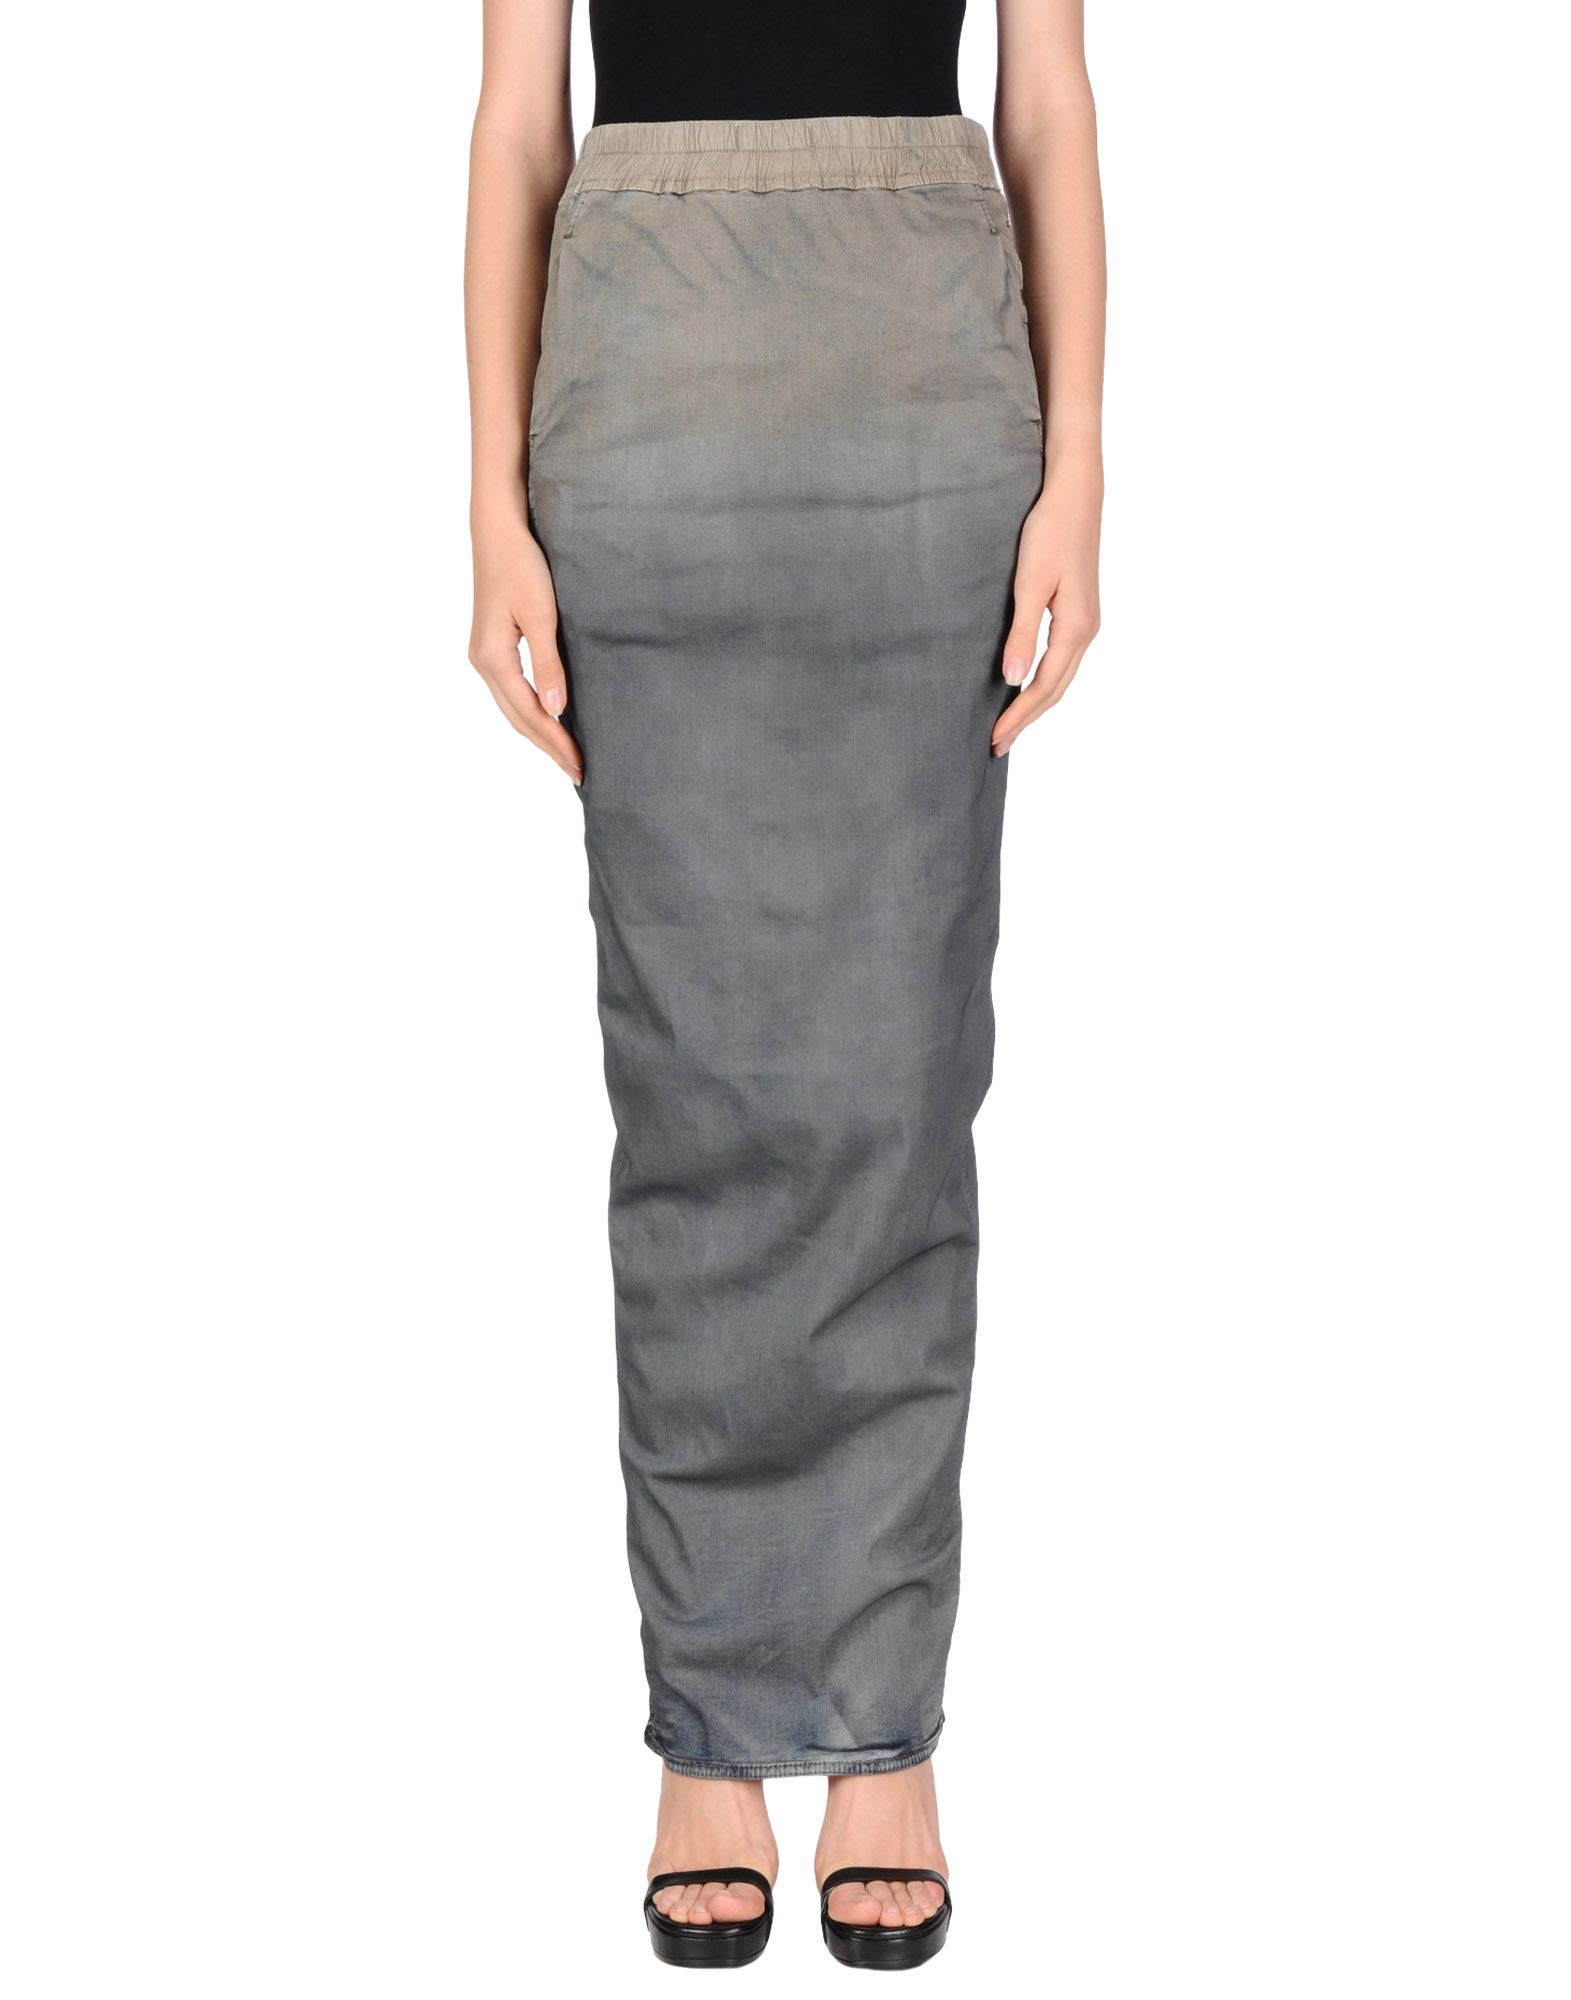 Gonna Jeans Drkshdw By Rick Owens Donna - Acquista online su Aw8DMrM2vw